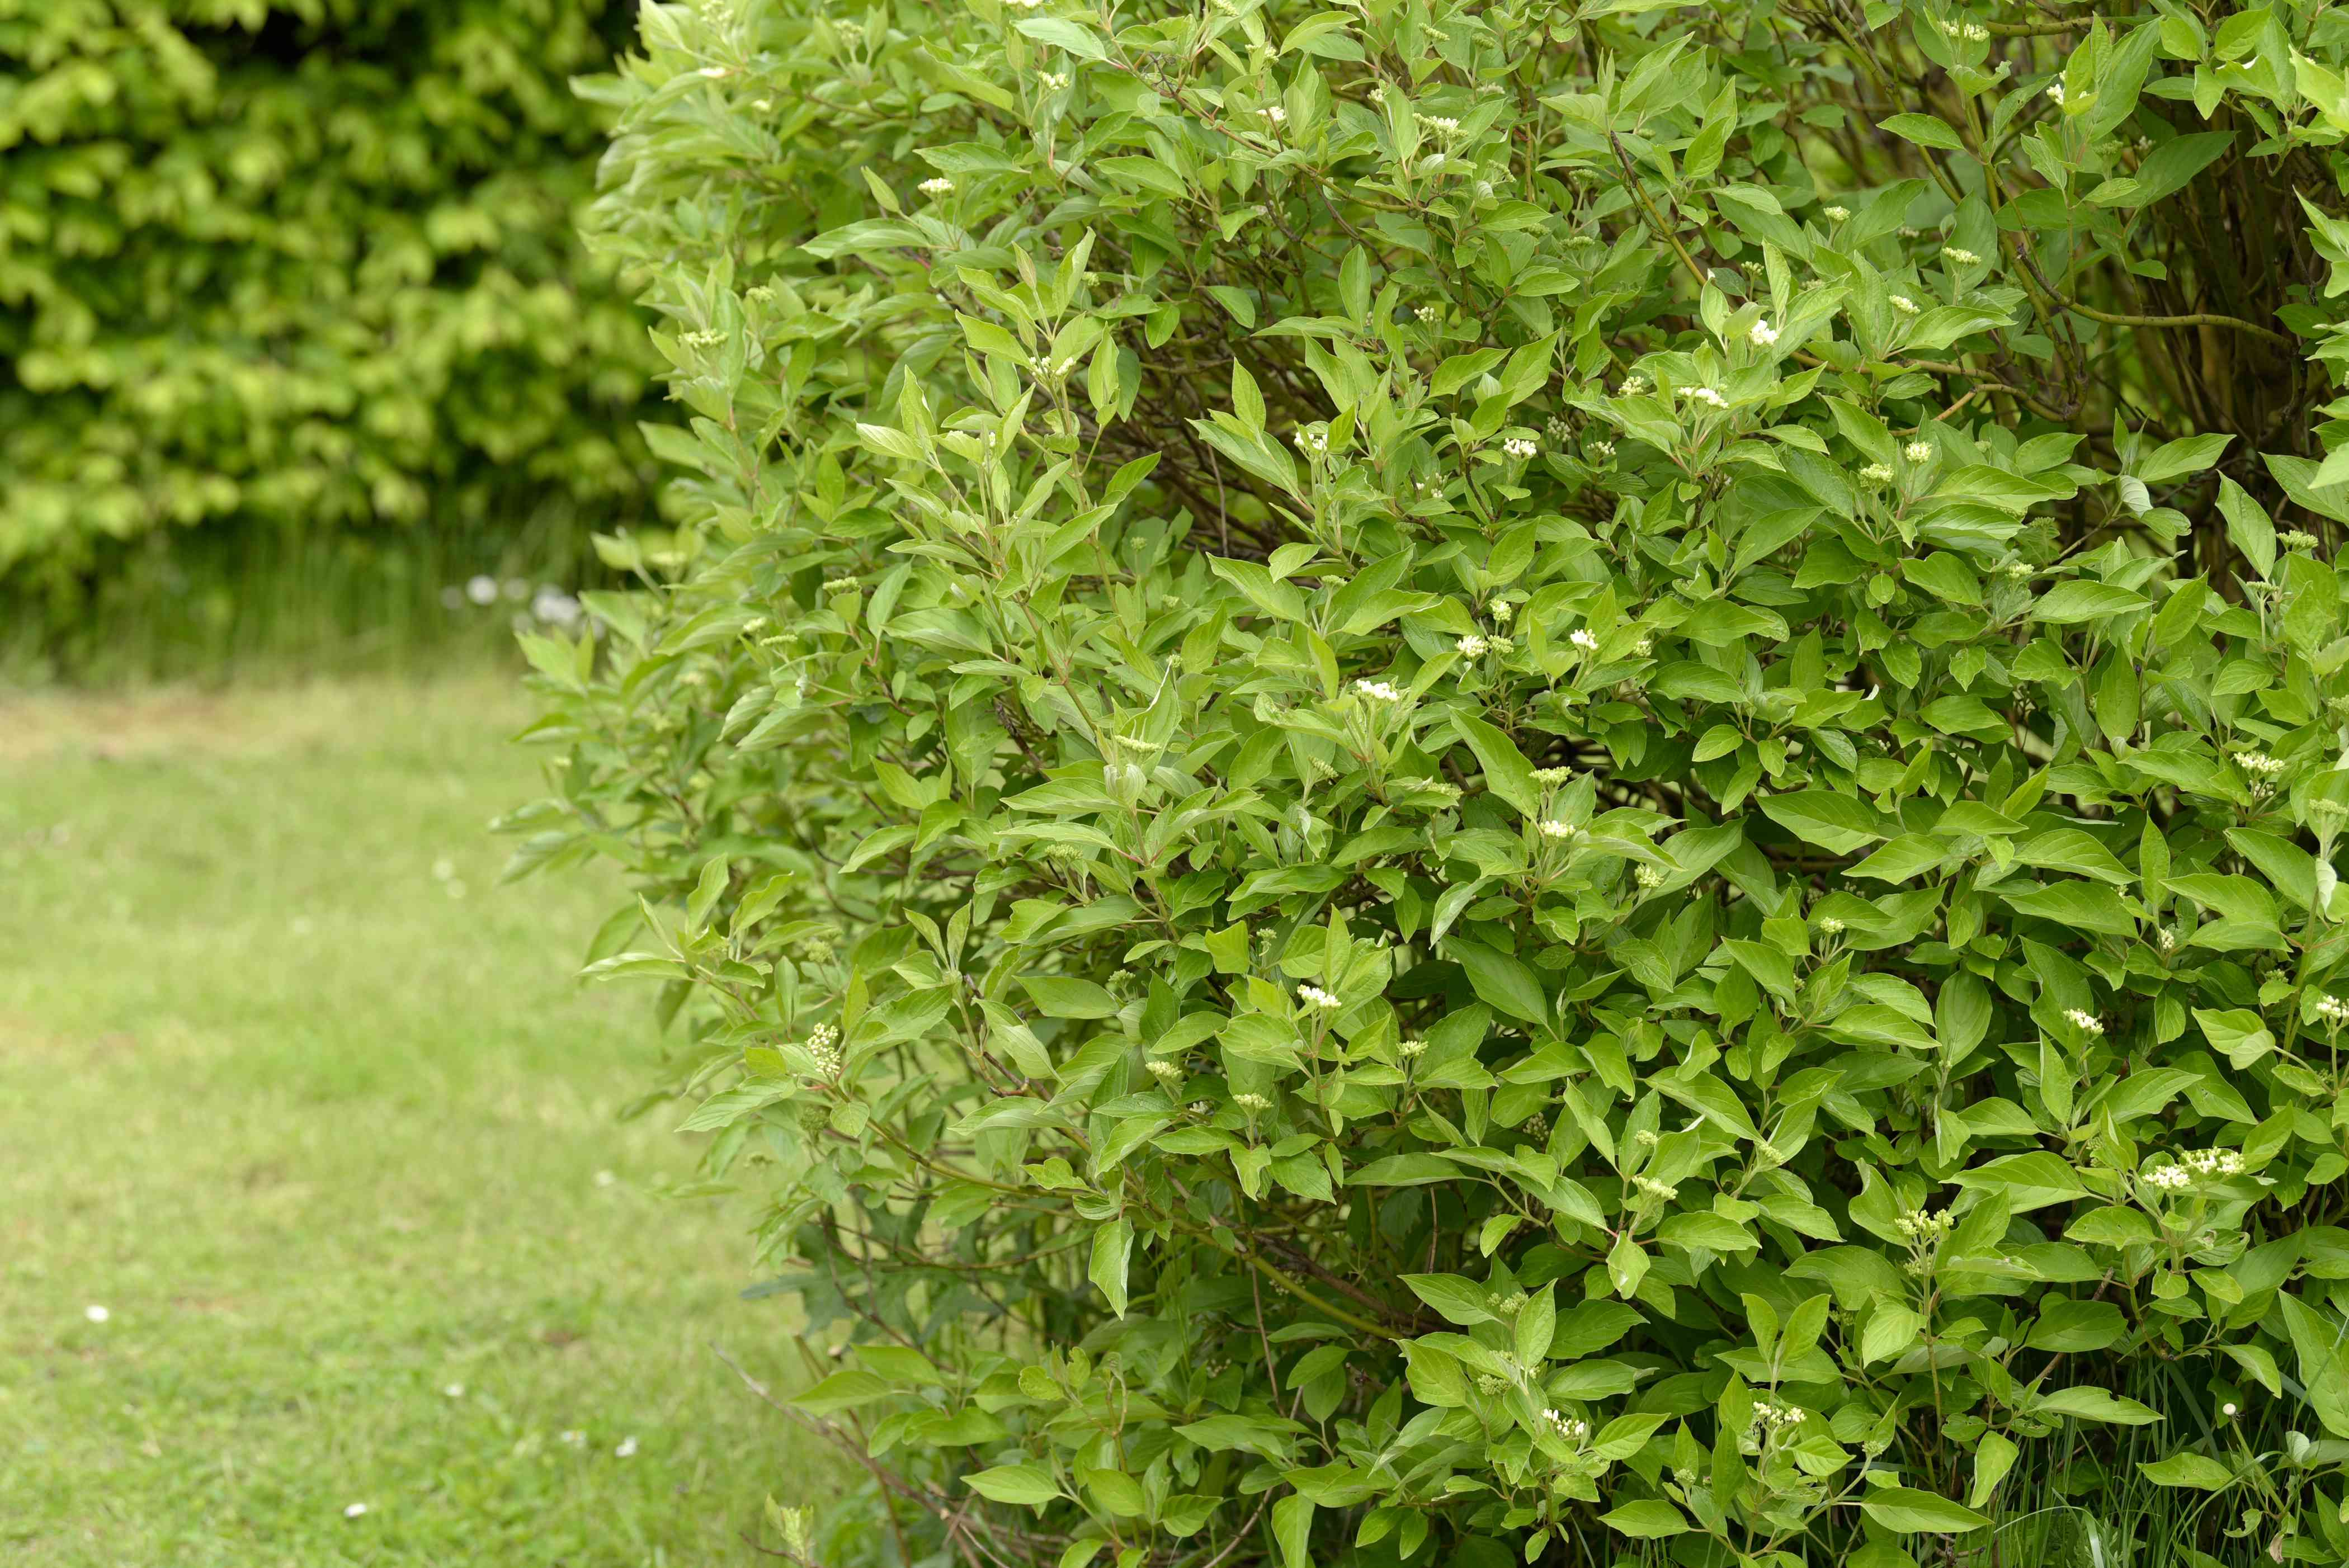 Yellow-twig dogwood shrub with green leaves and small white flowers